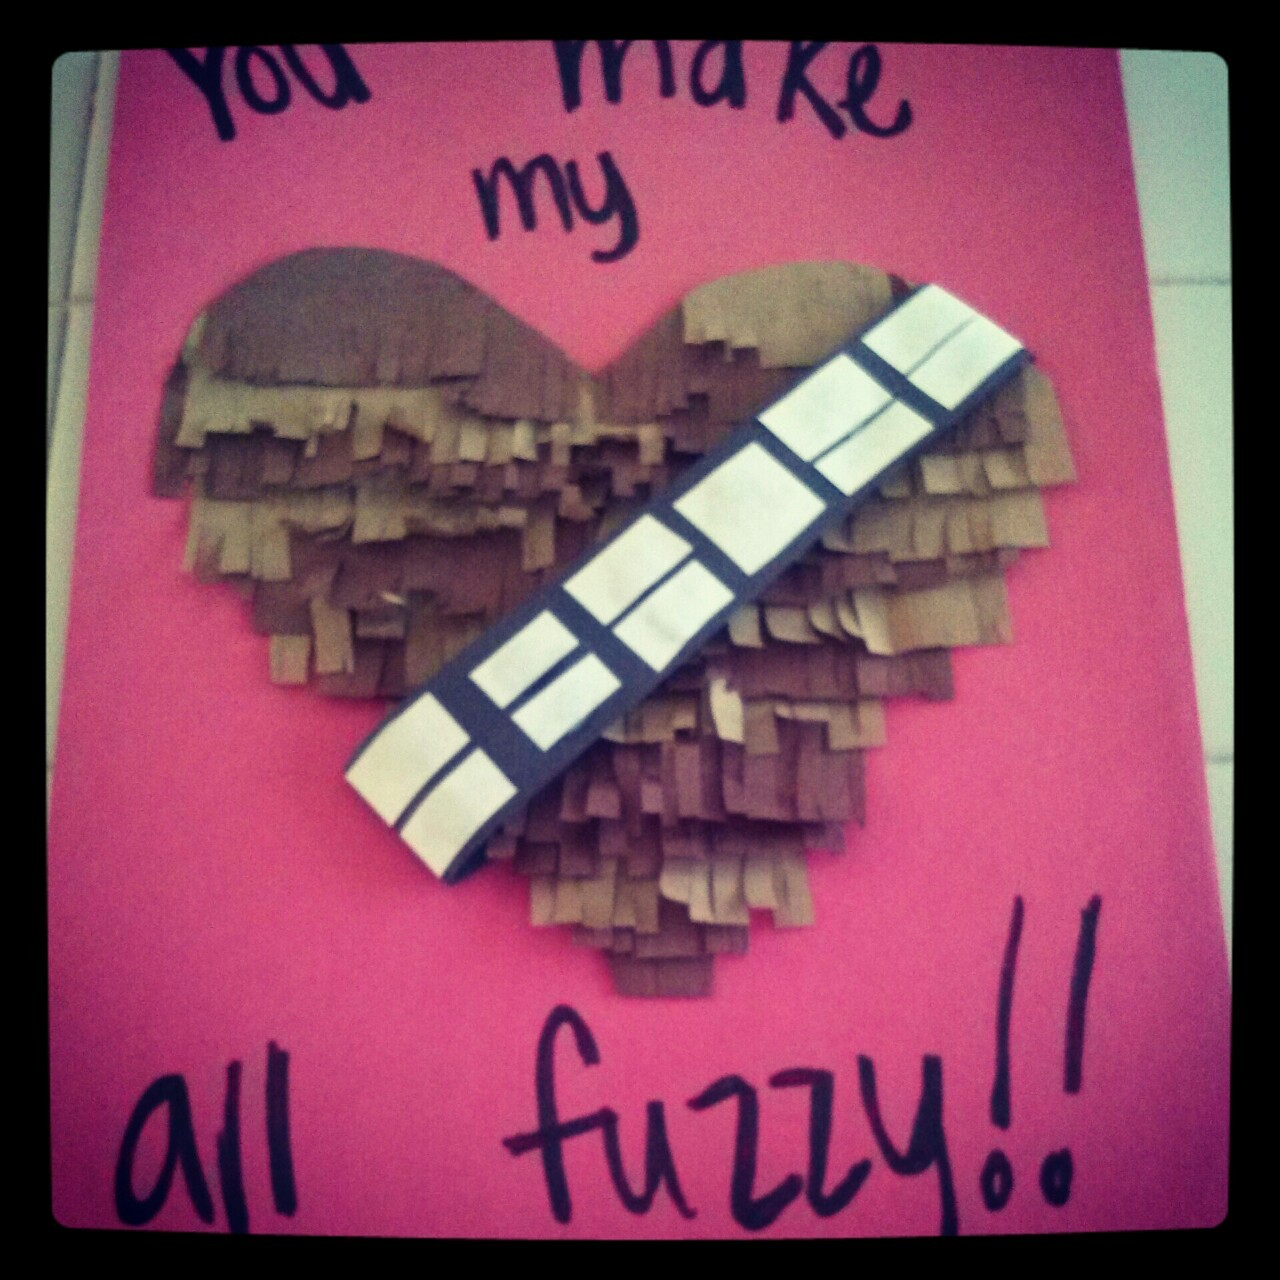 The card I made for Josh. This looks prettier lol